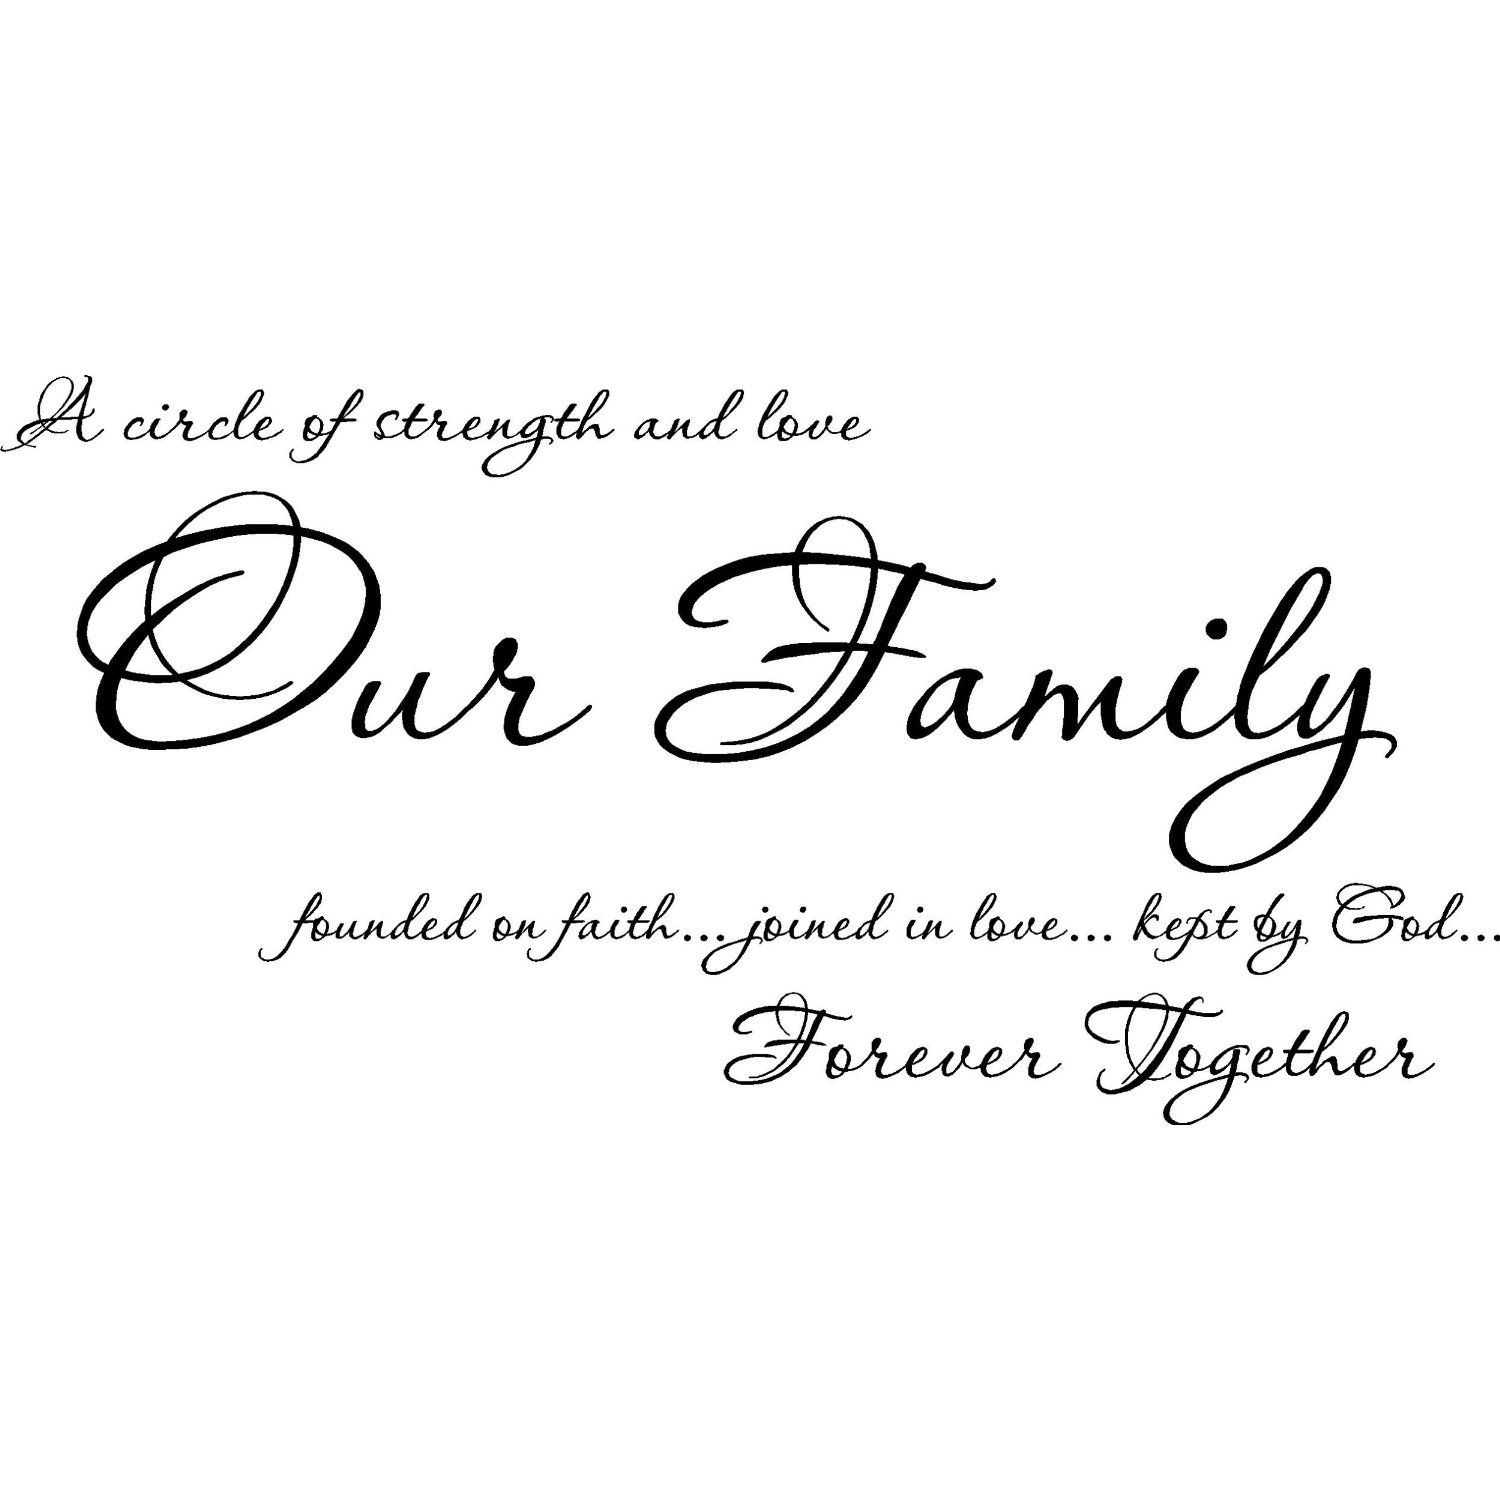 Famous Quotes About Family Love And Strength Pinterest thumbnail